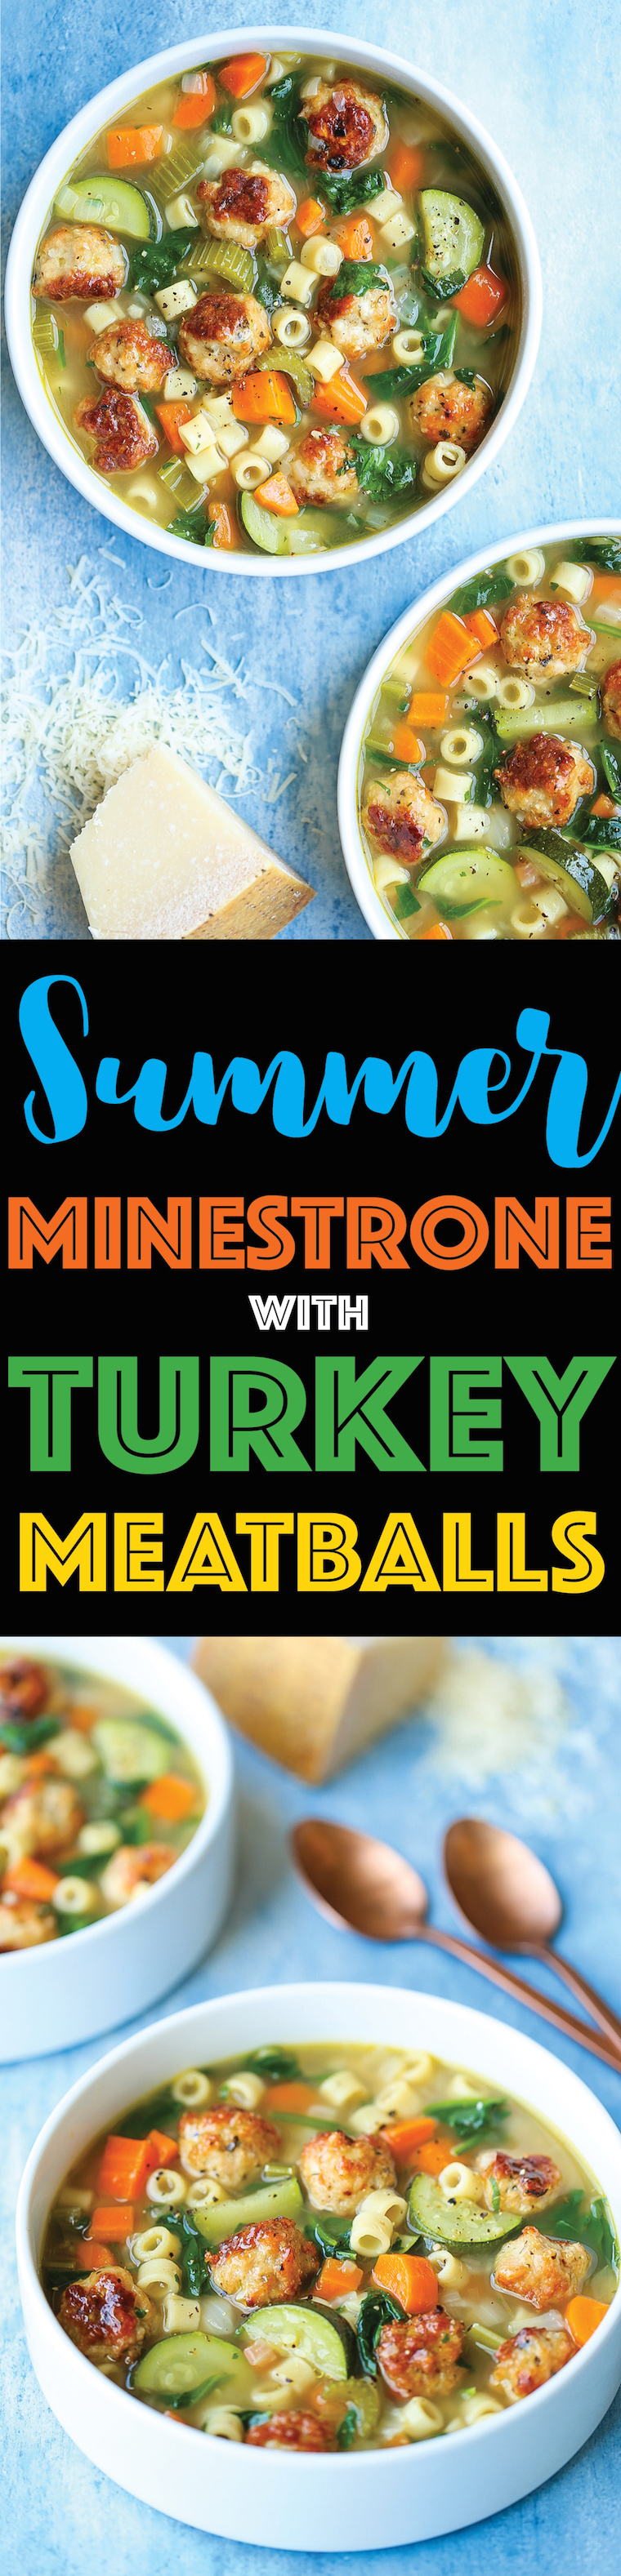 Summer Minestrone with Turkey Meatballs - A hearty soup with all of your favorite vegetables! It's fresh, it's warm and it's so cozy even in the summertime!